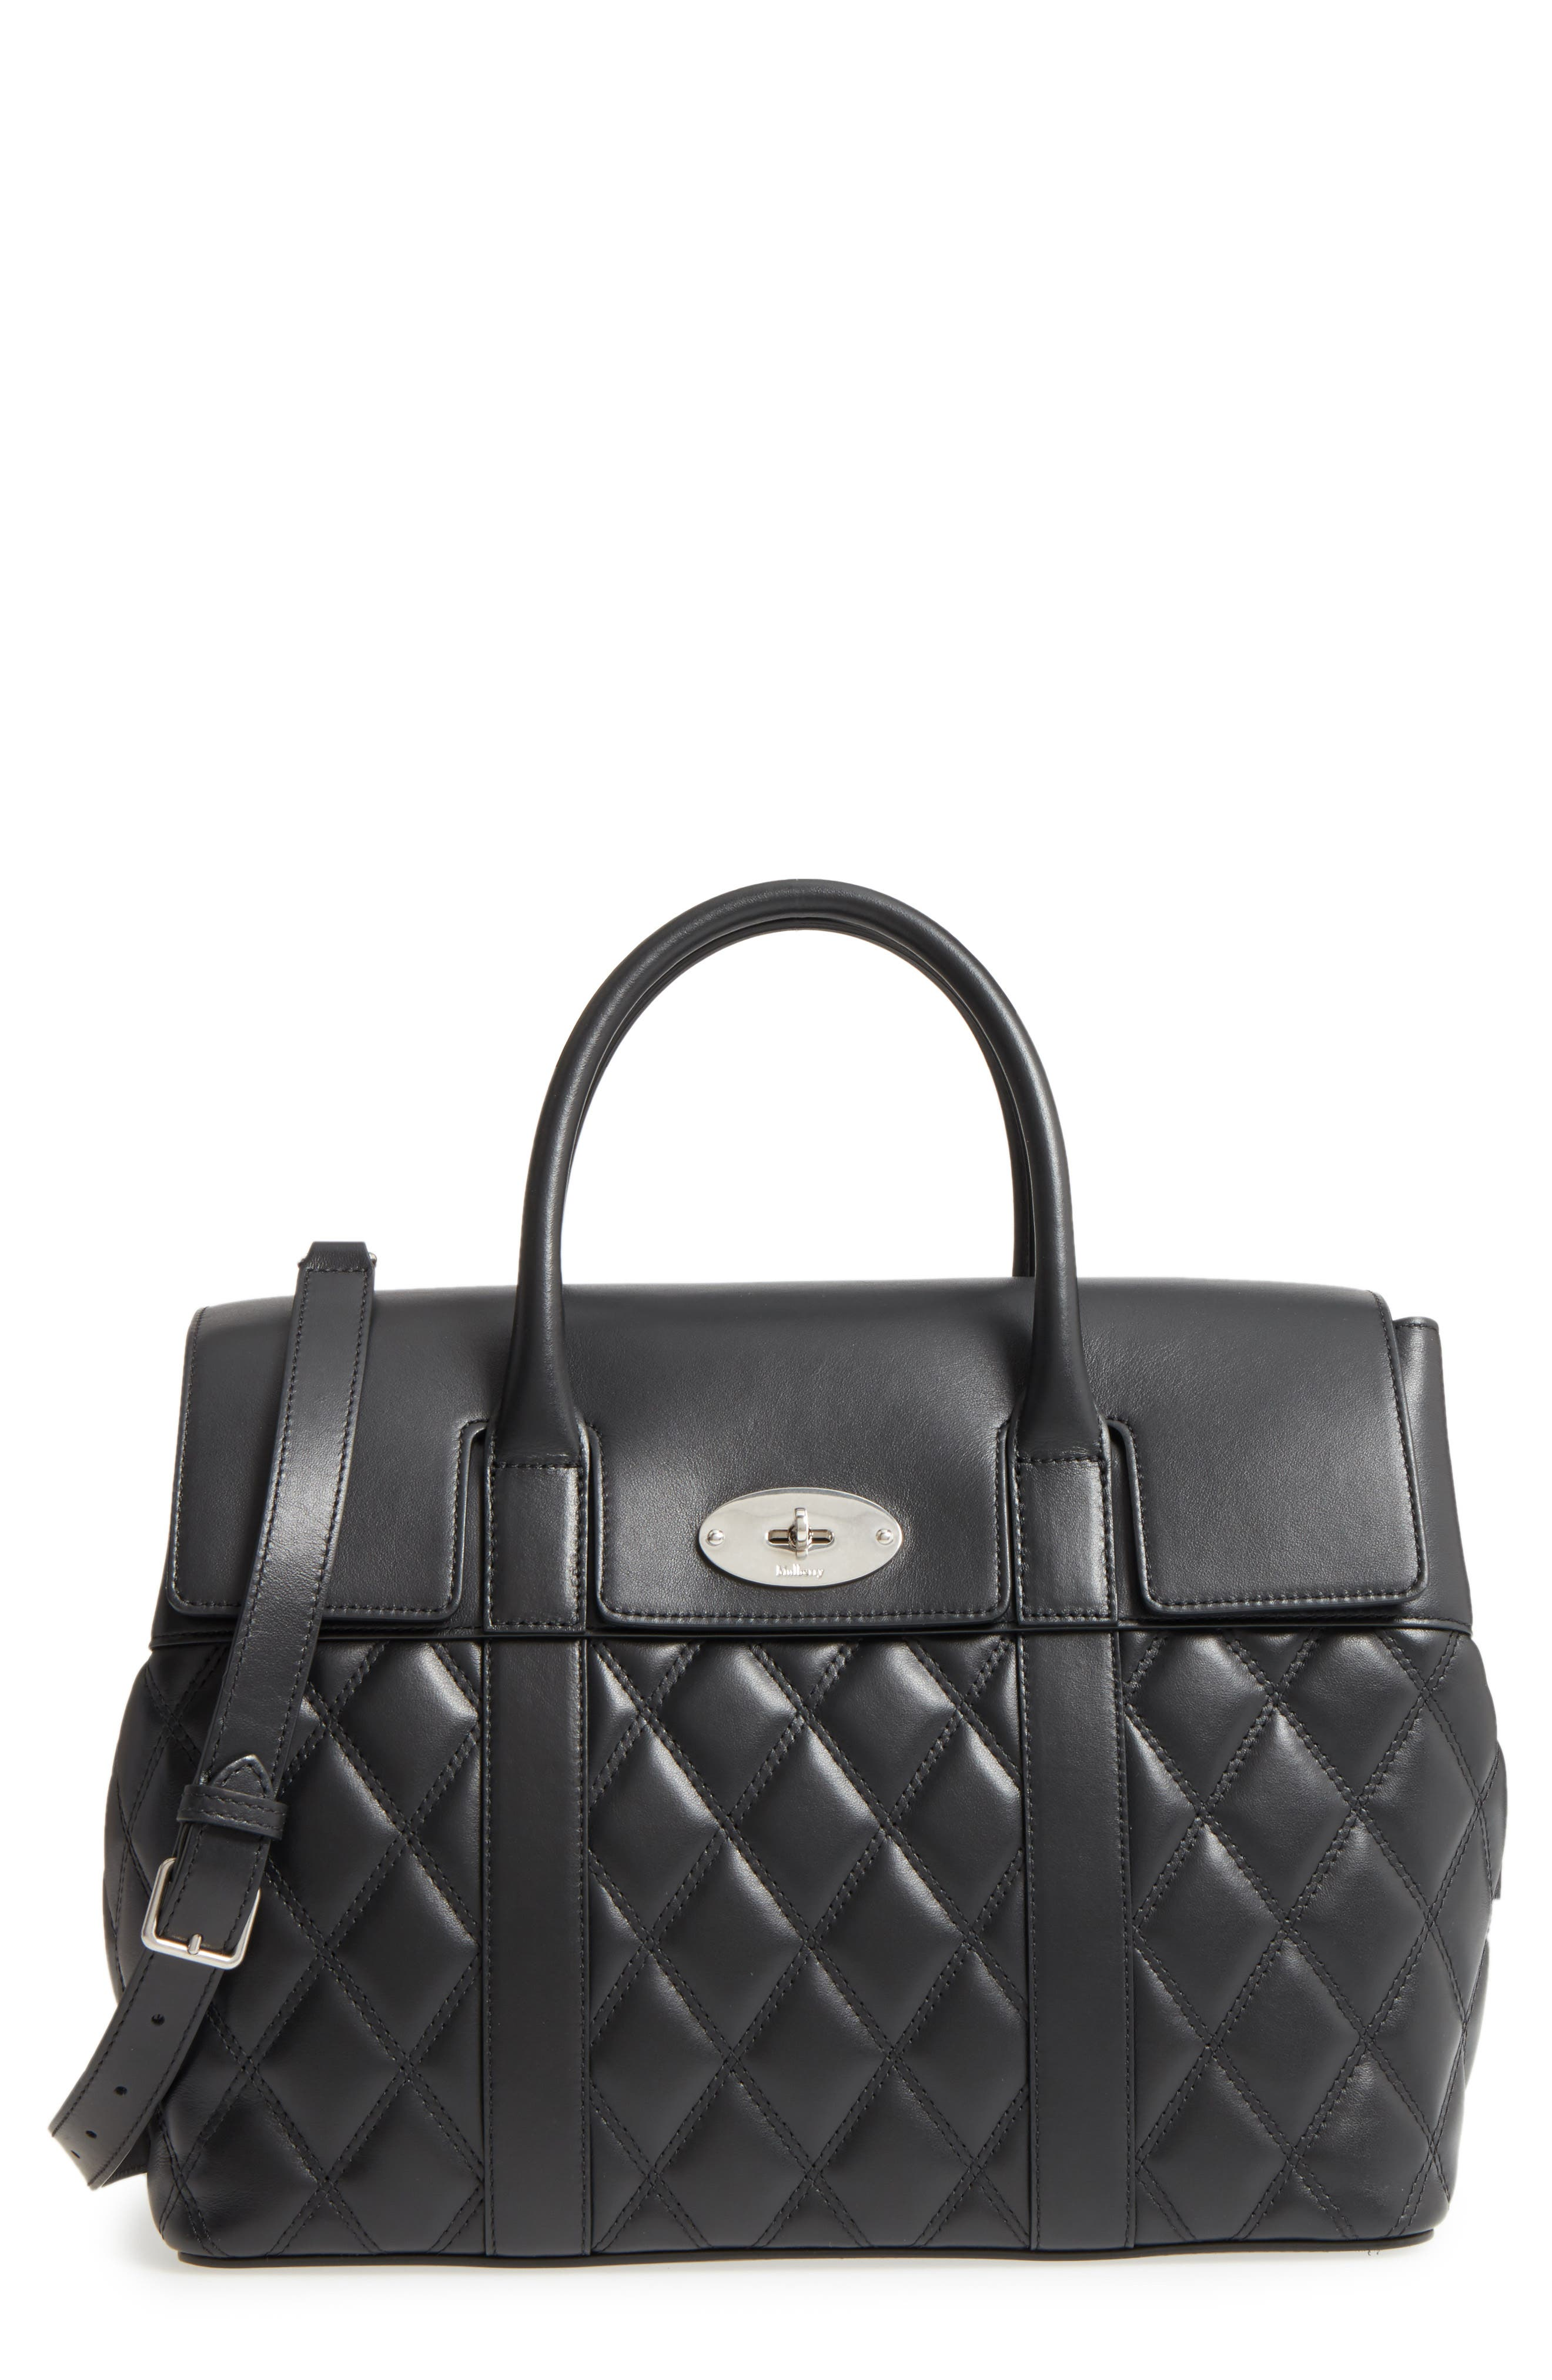 Main Image - Mulberry Bayswater Quilted Calfskin Leather Satchel